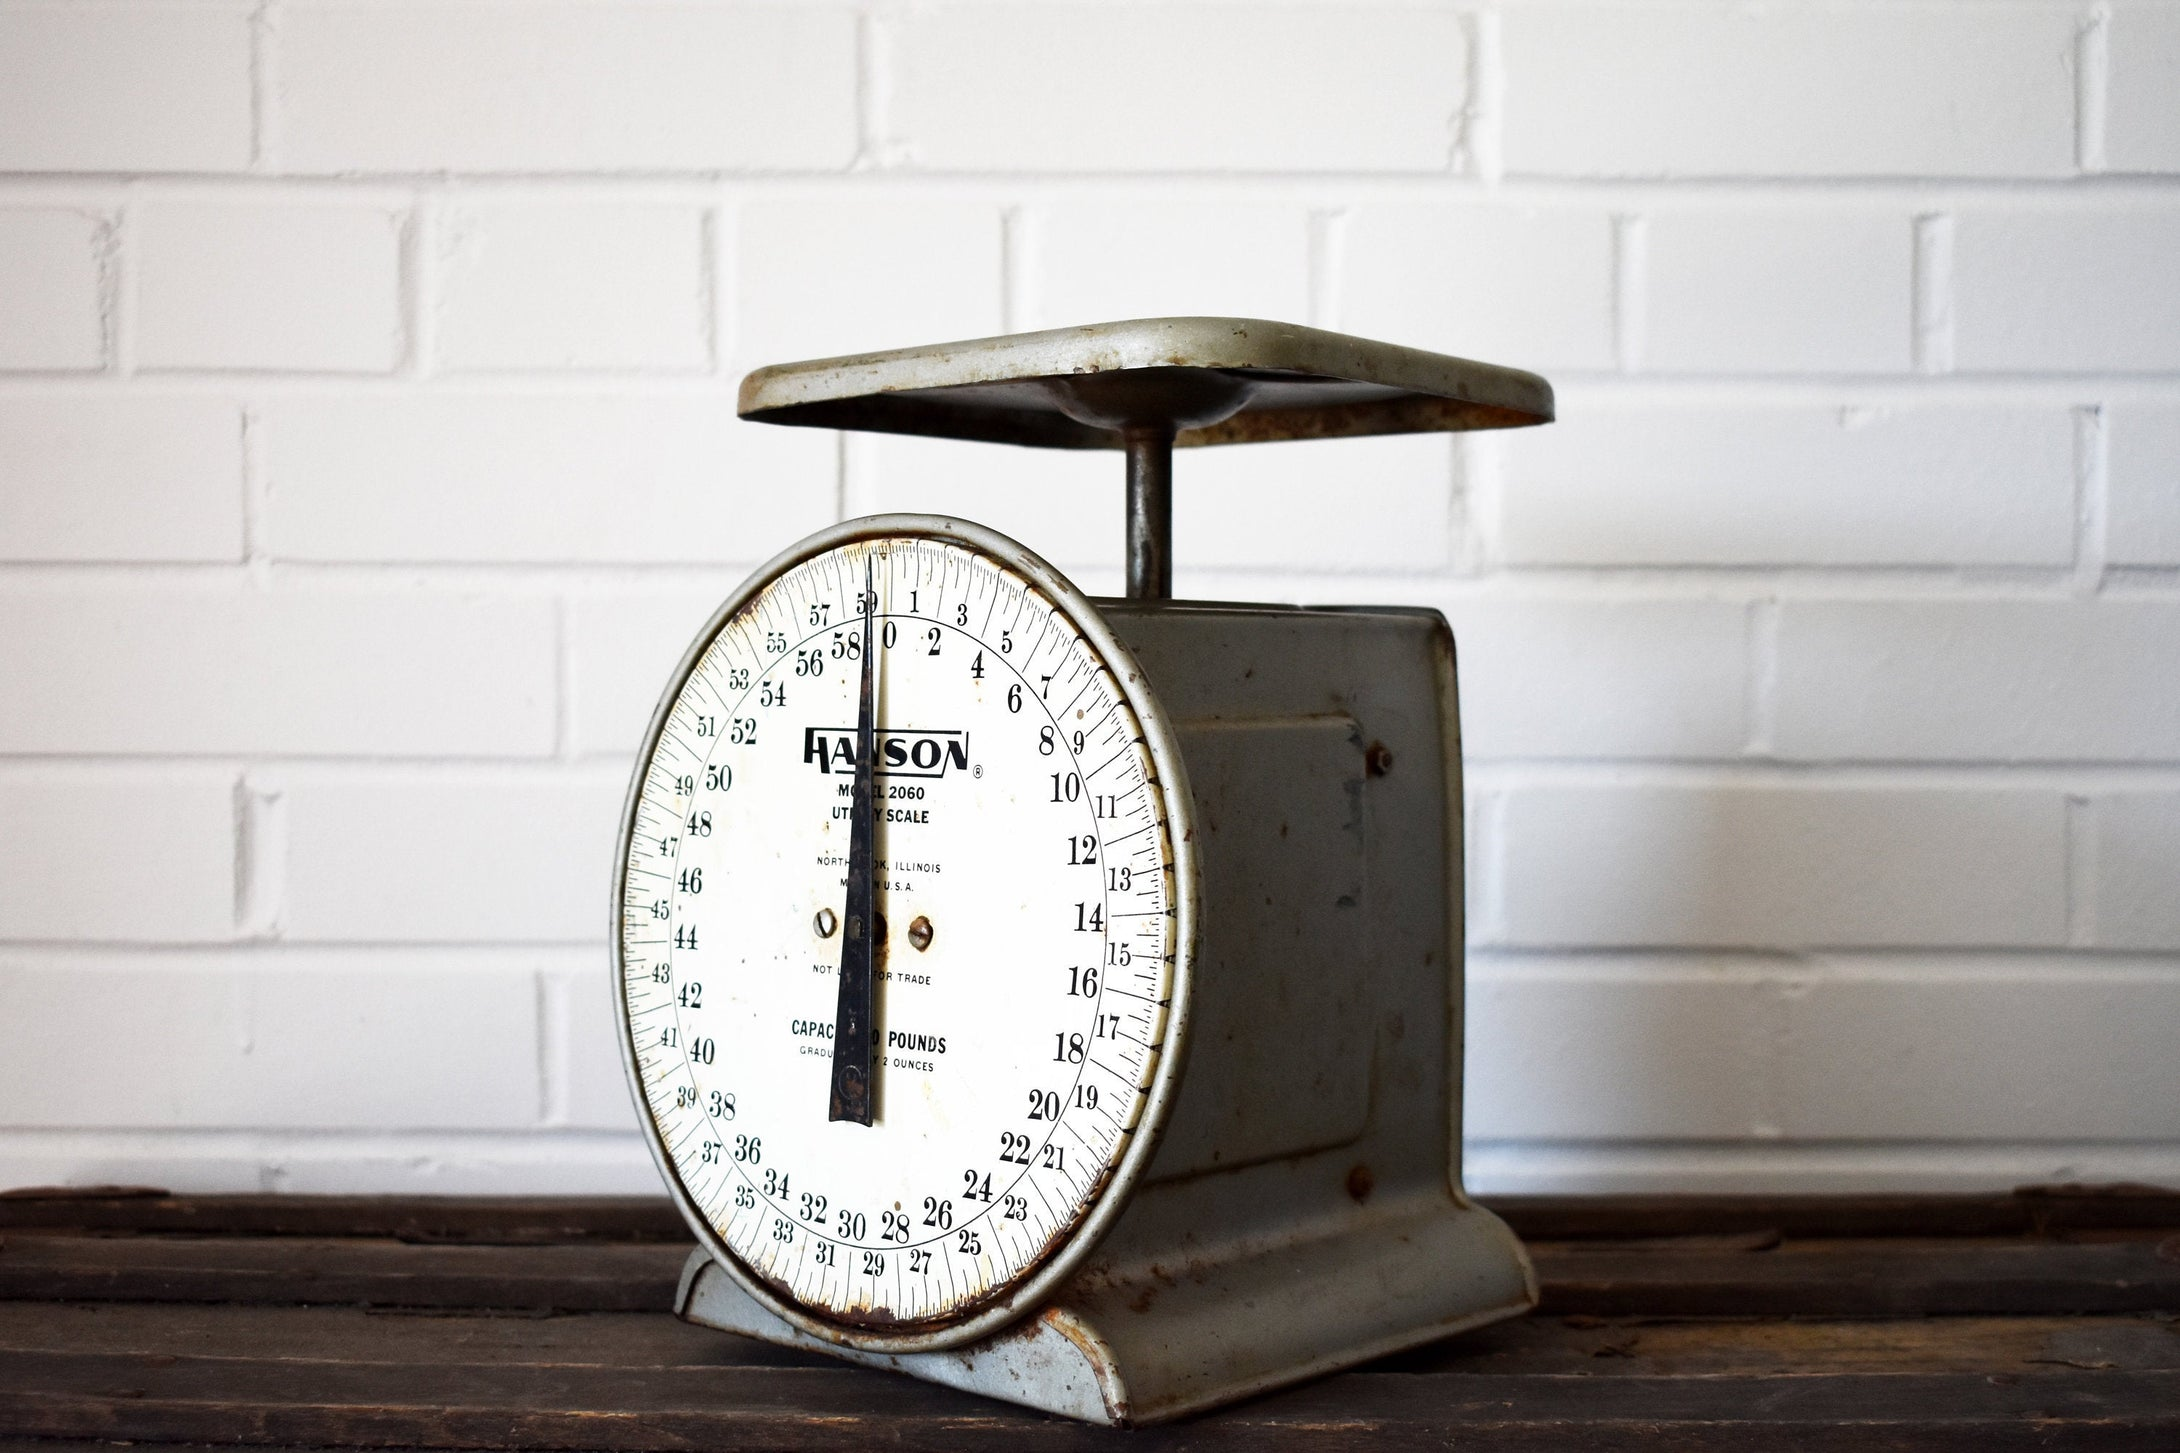 Large Industrial Metal Scale - Hanson Model 2060 Utility - Made in Chicago, USA - 60lb Capacity - 100% Functional - 1960s